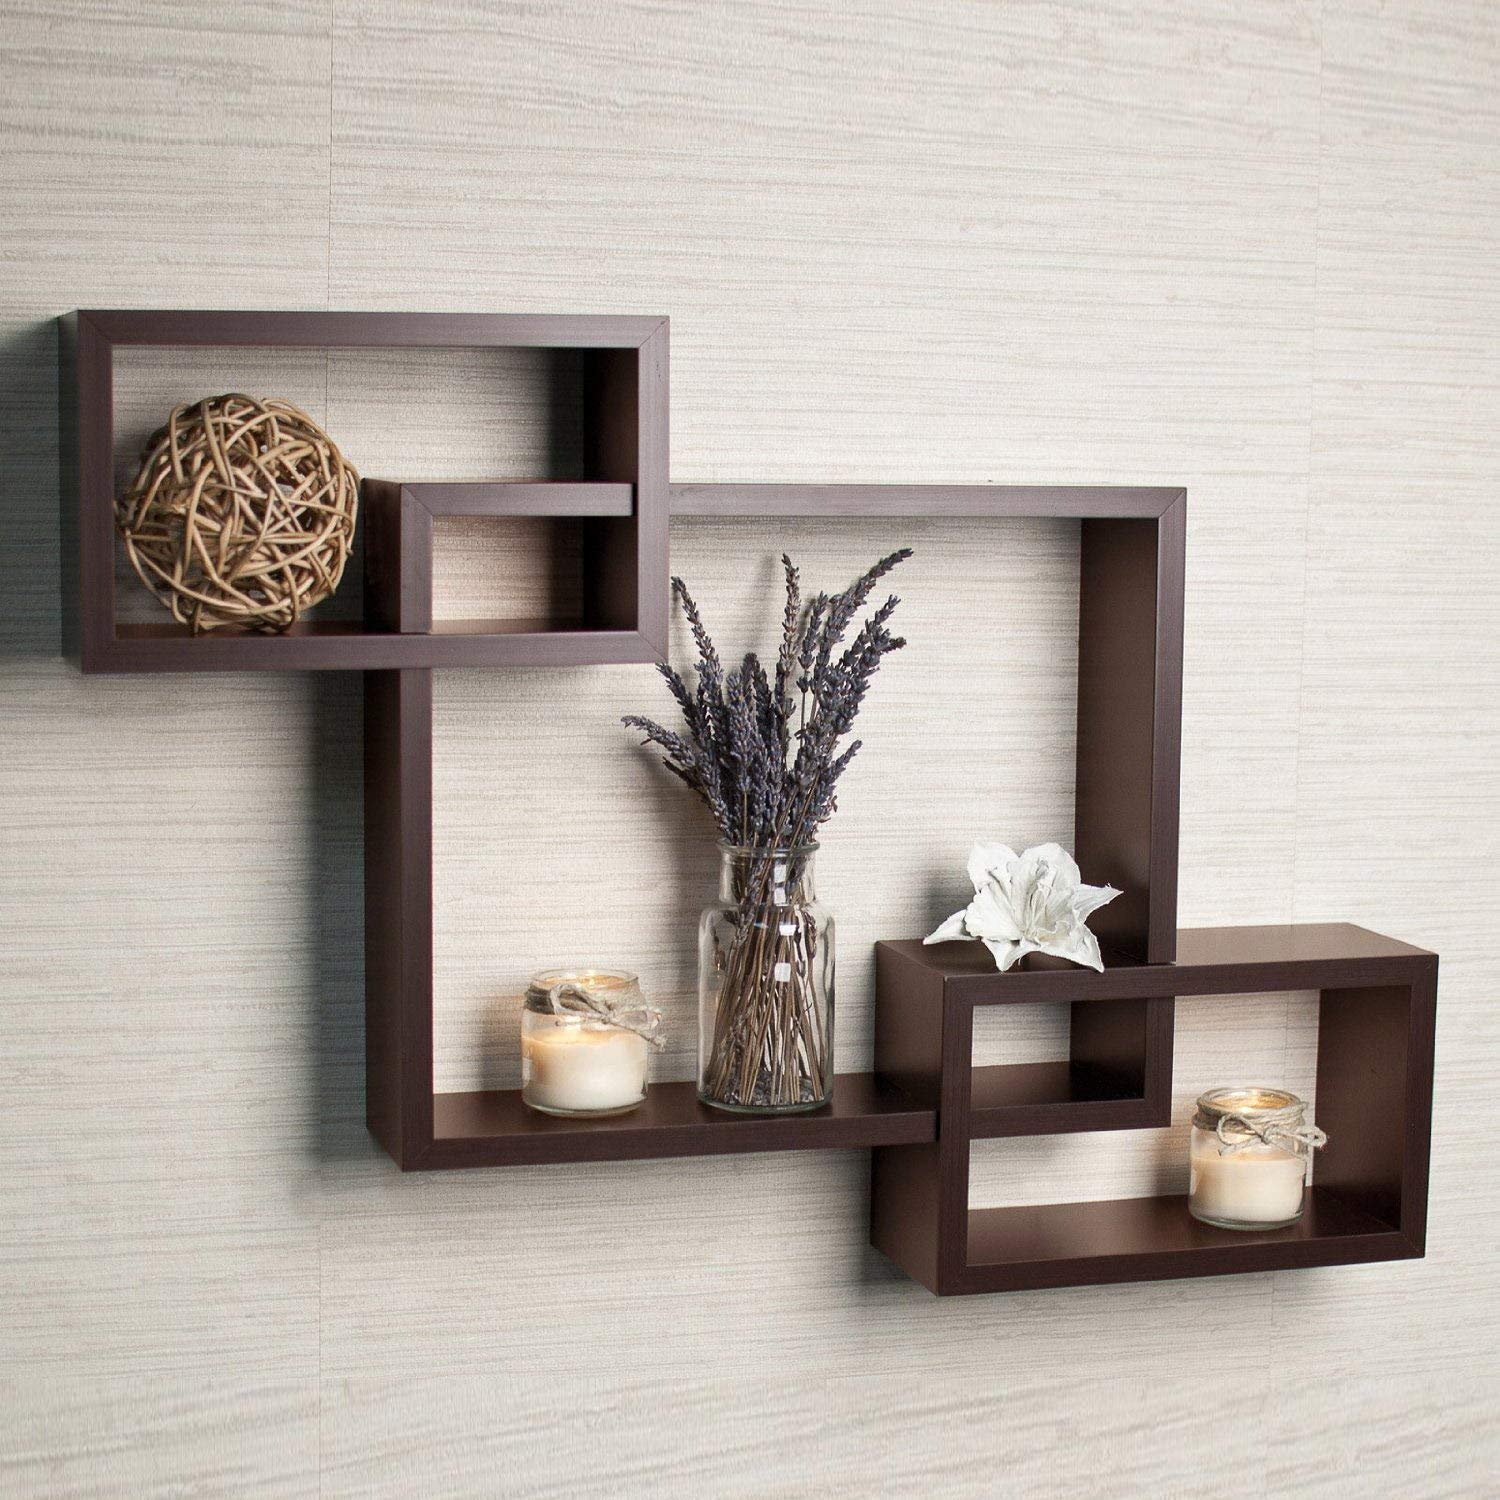 Furniture Cafe Engineered Wood Wall Mounted Floating Intersecting Storage Display Wall Shelves Standard Size Brown Buy Online In Bosnia And Herzegovina At Bosnia Desertcart Com Productid 110776179